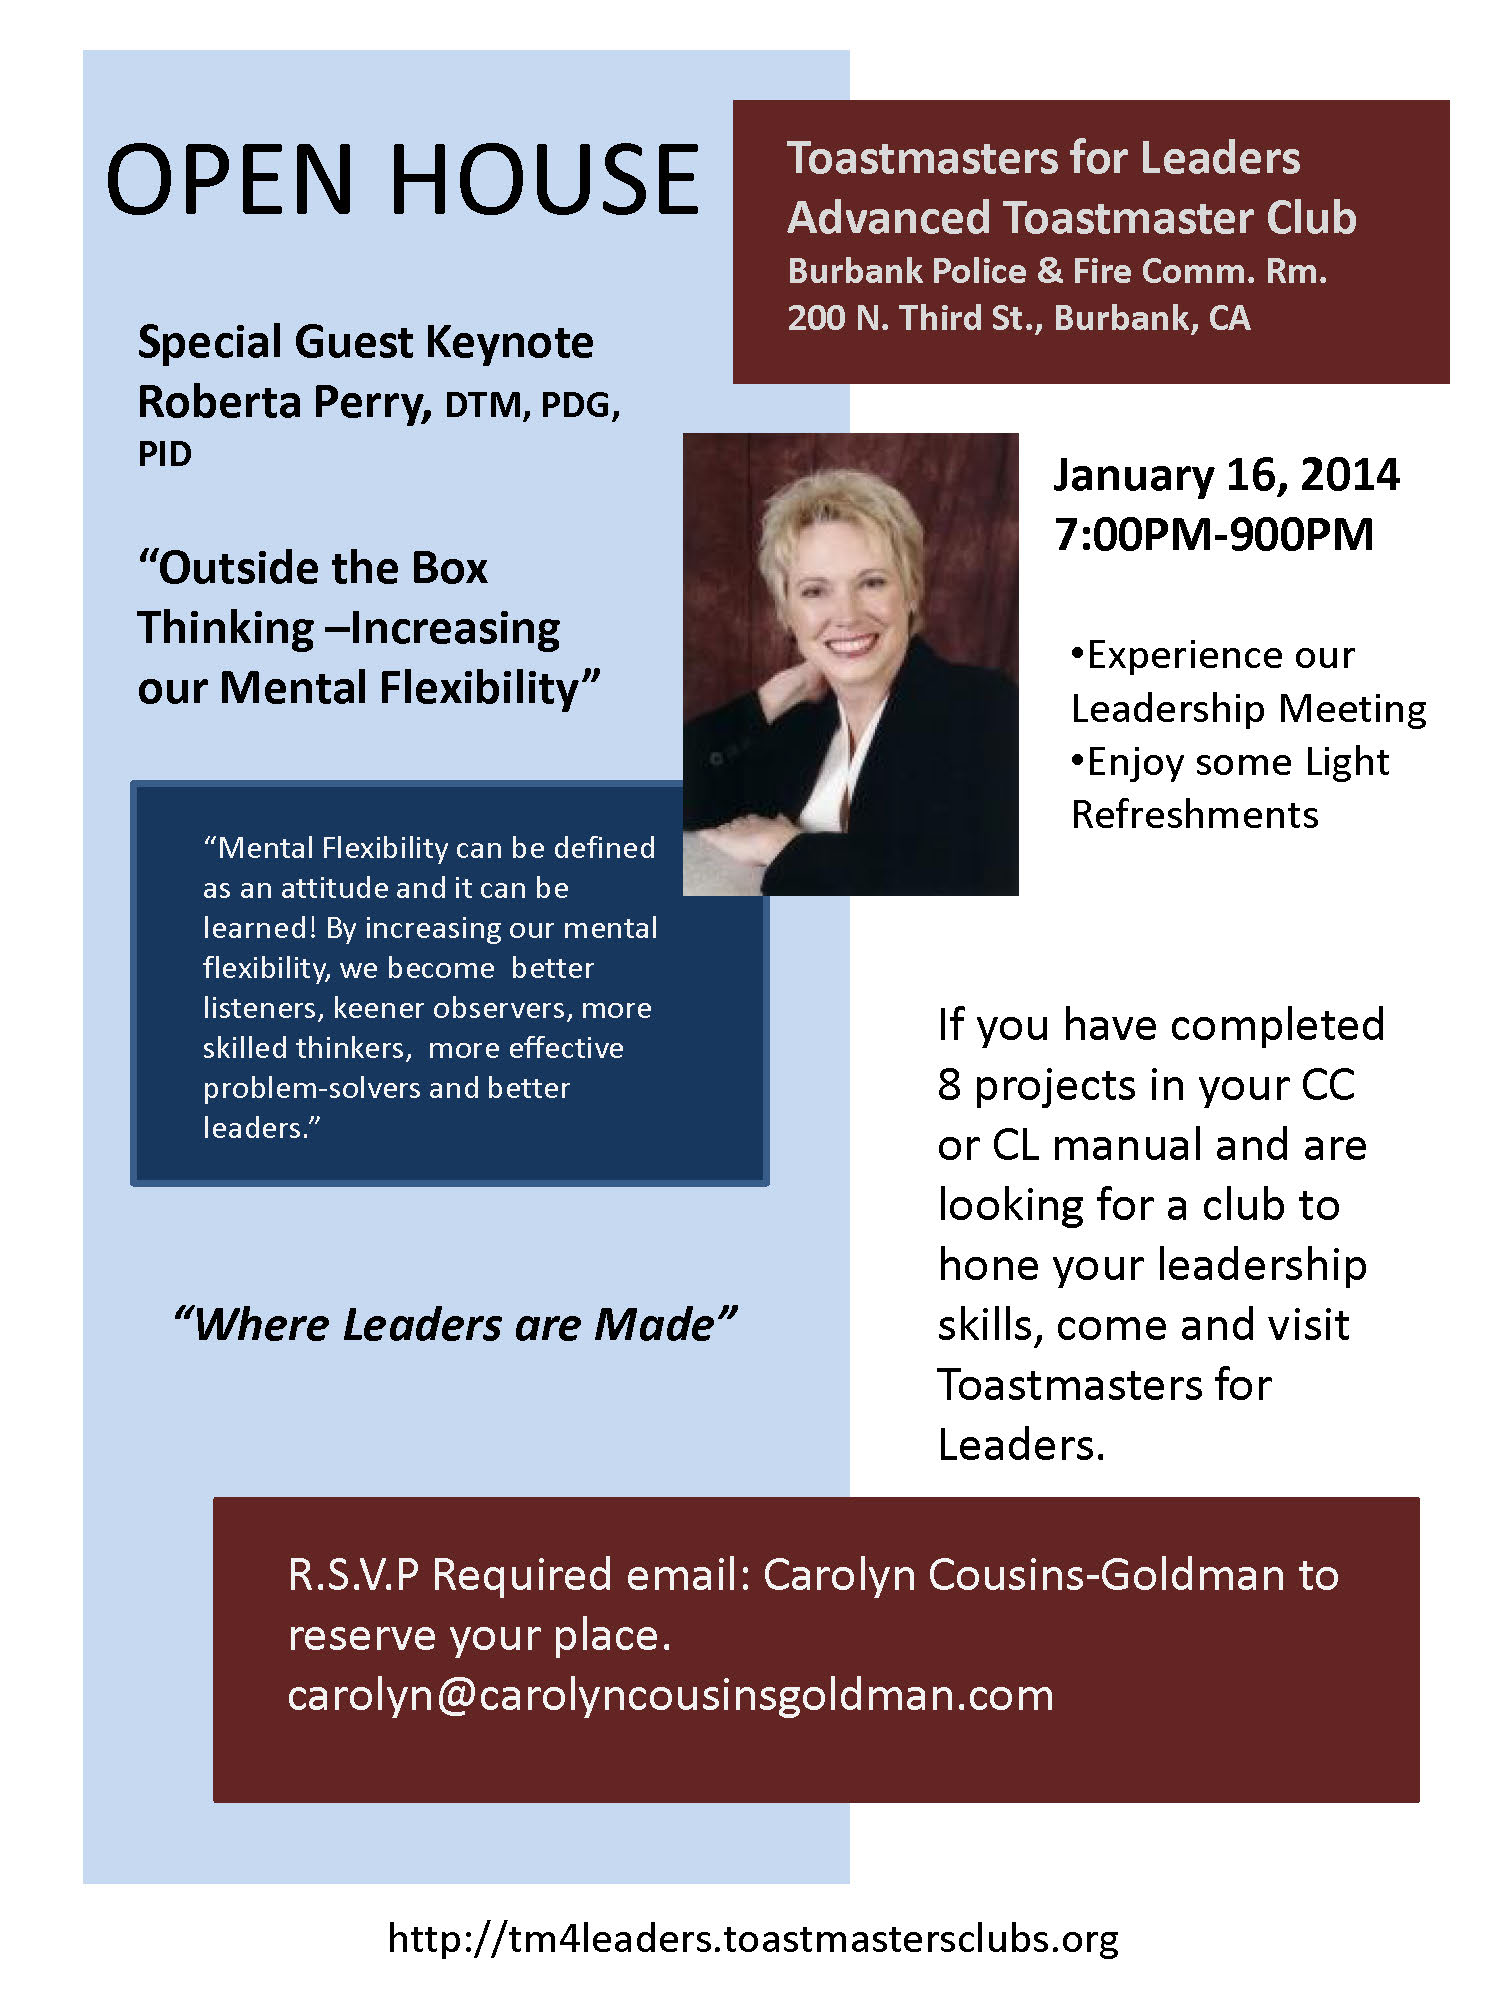 toastmasters for leaders open house flyer toastmasters for leaders open house flyer